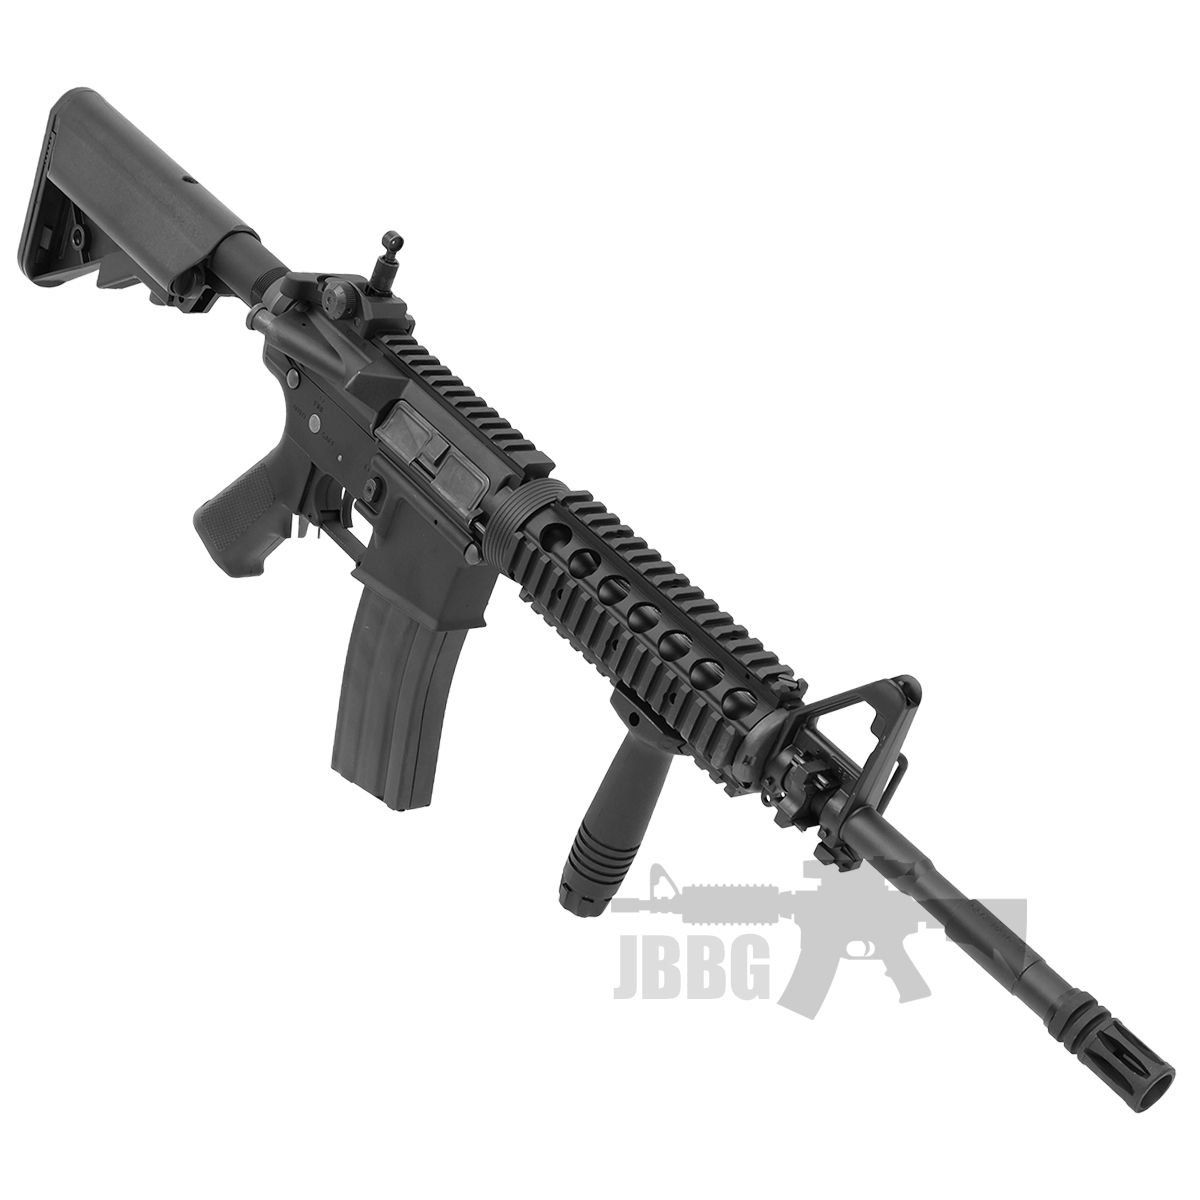 King Arms M4 RIS with Mosfet Advance Airsoft Gun 4